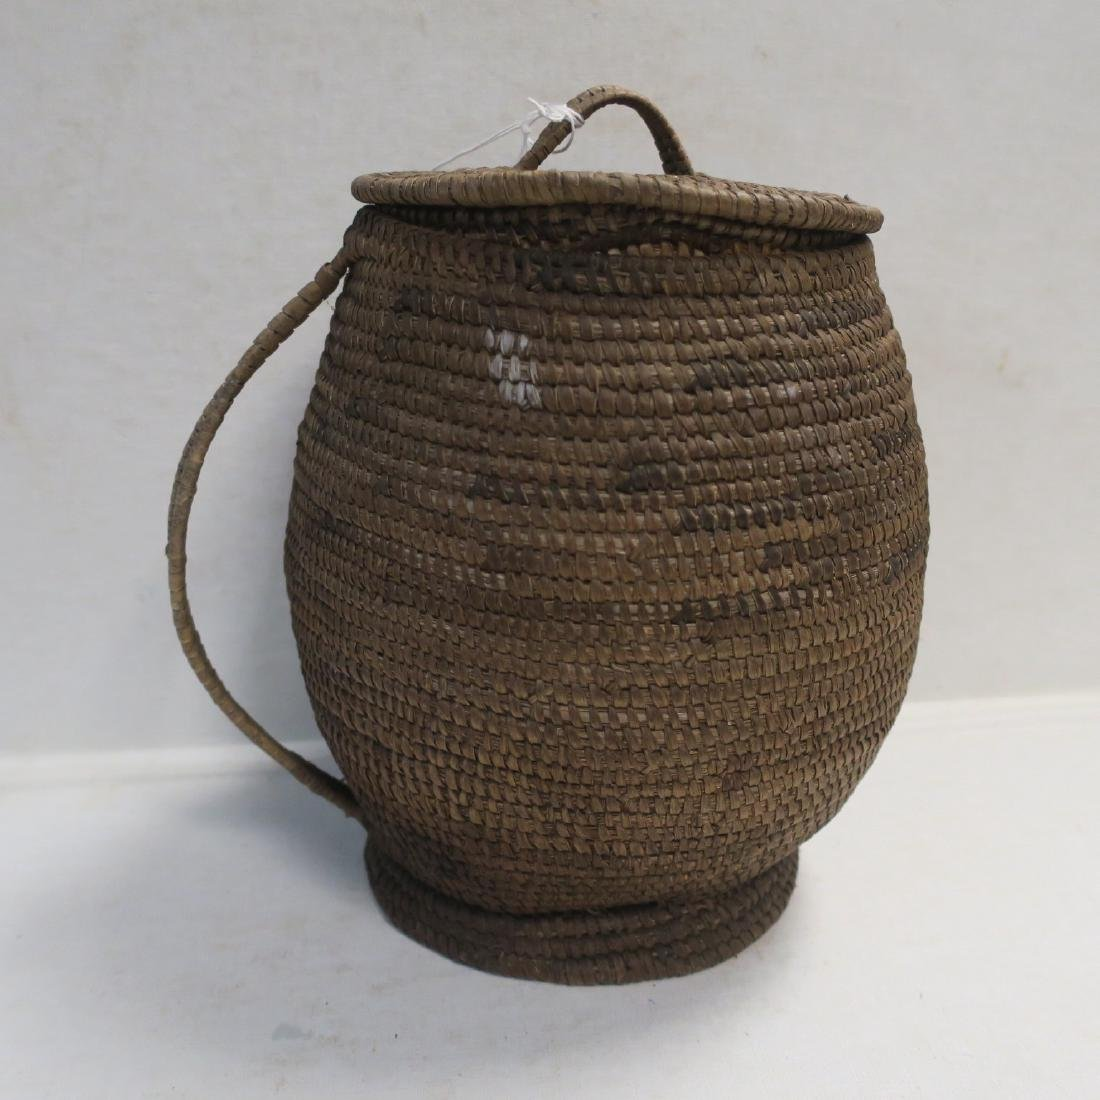 Single Handle Coiled Basket with Lid: